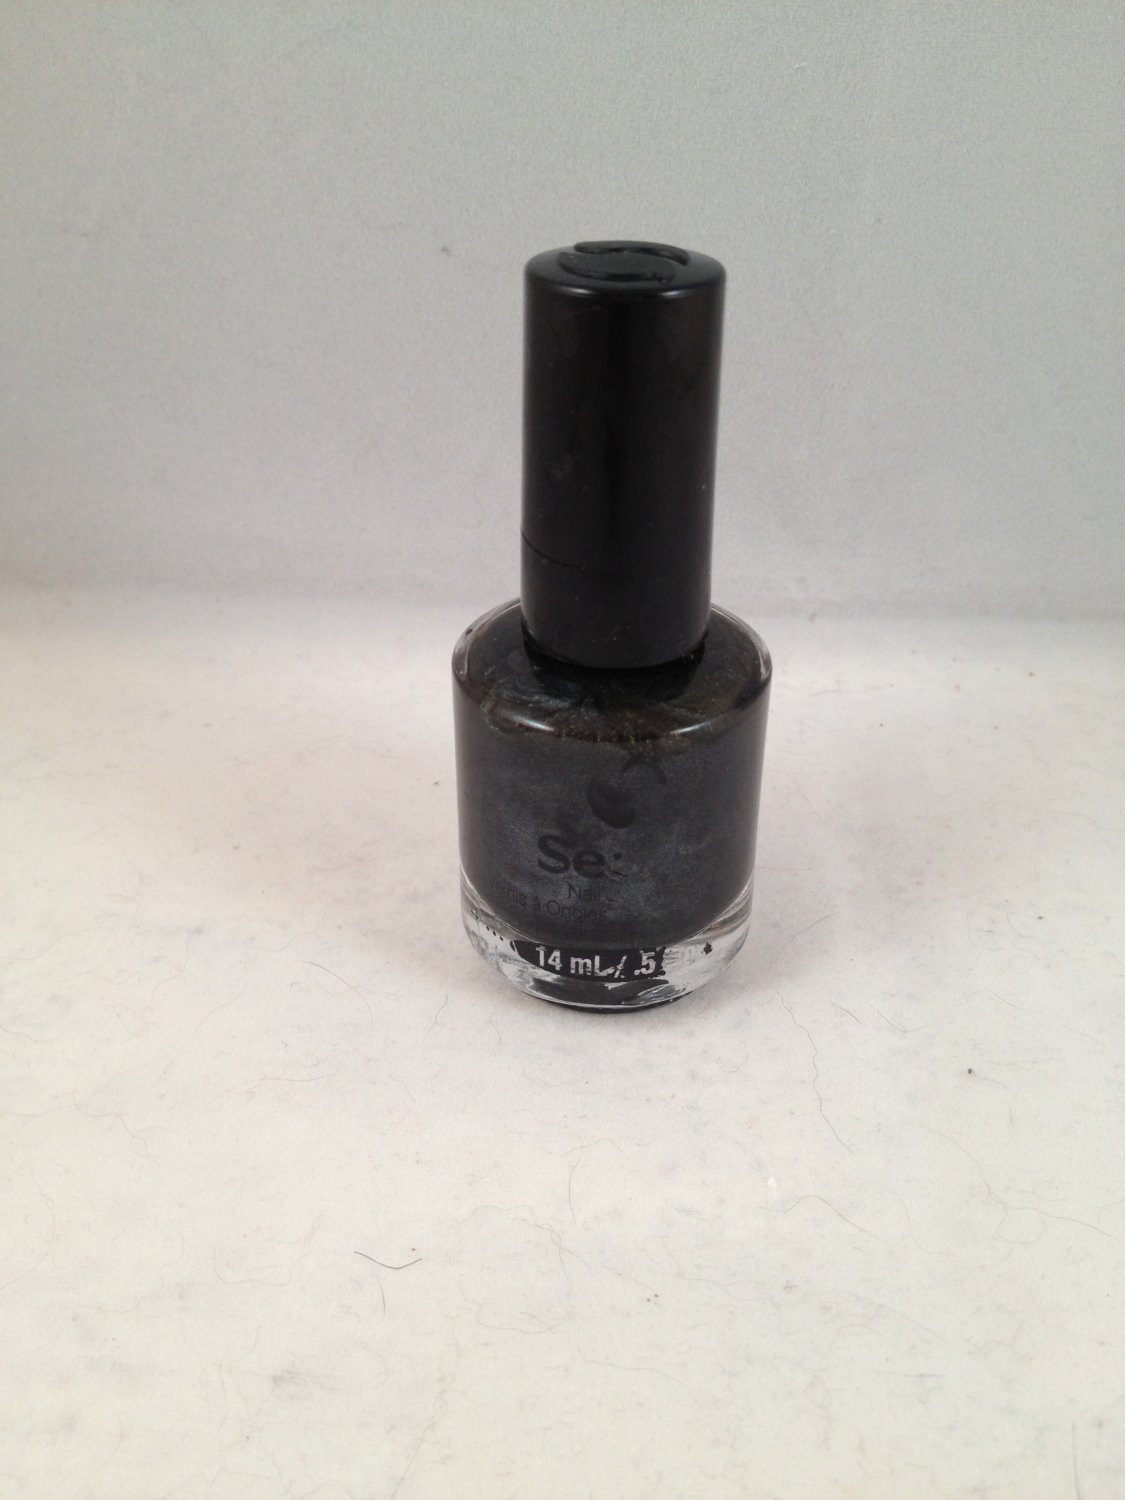 Seche Nail Lacquer Smokey color polish *damaged* deep charcoal shimmer